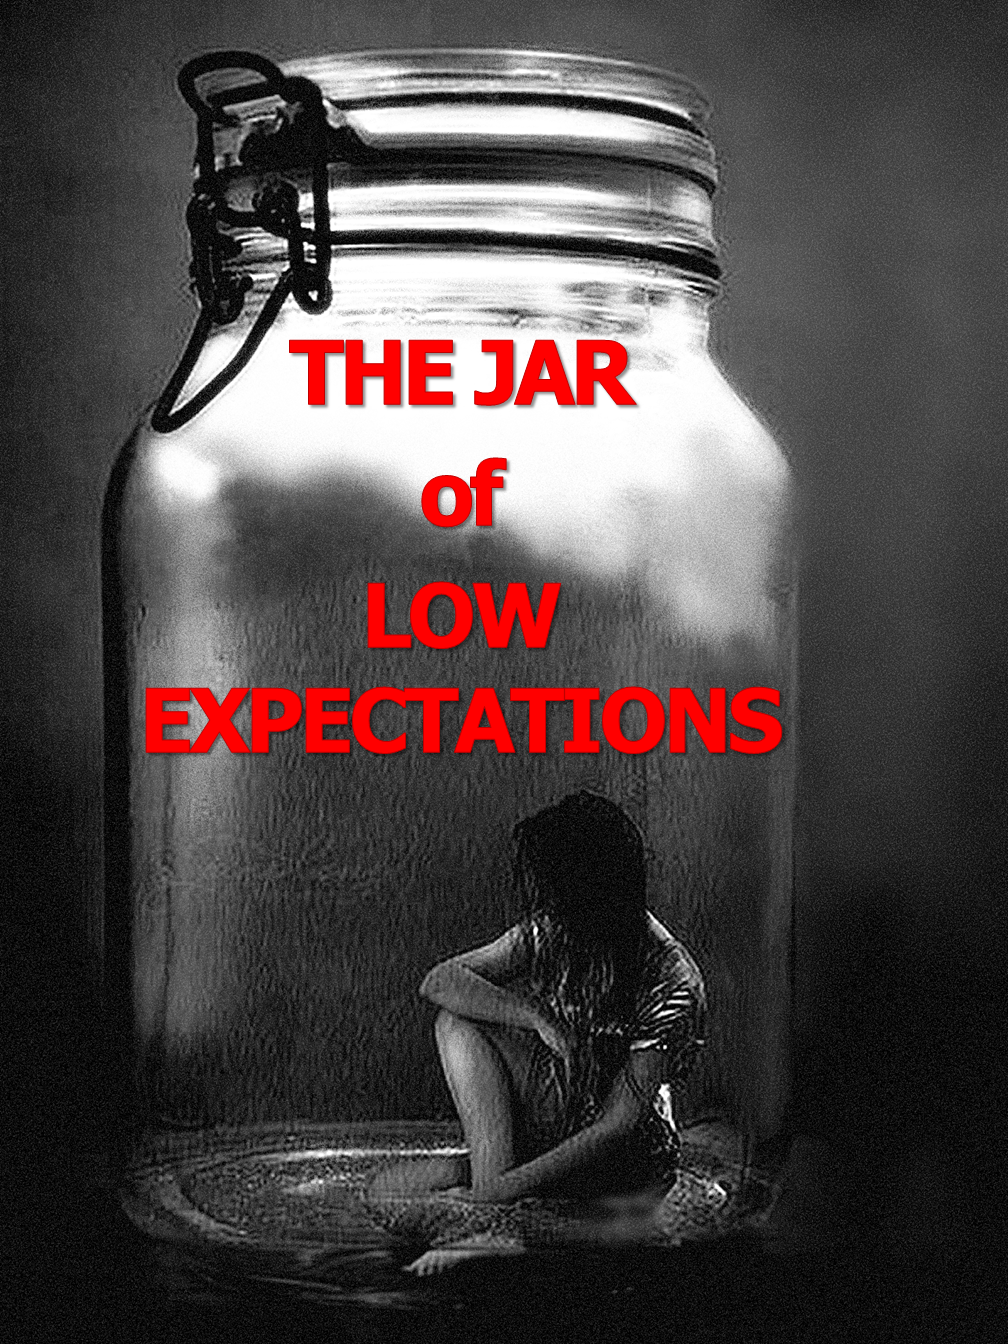 The Jar of Loew Expectations